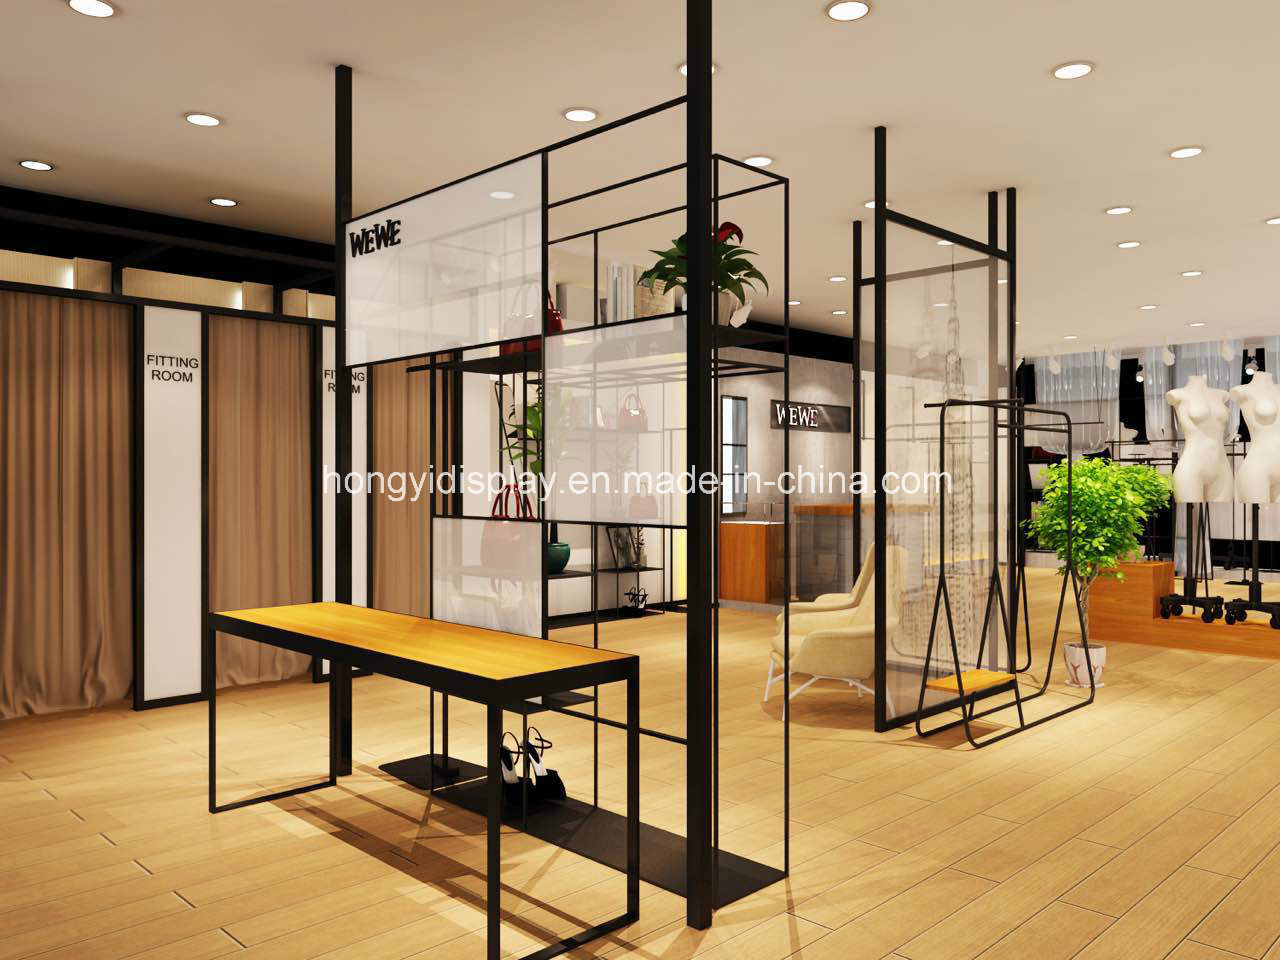 Uncategorized Clothing Store Decoration china ladies clothing store display design for clothes shop decoration